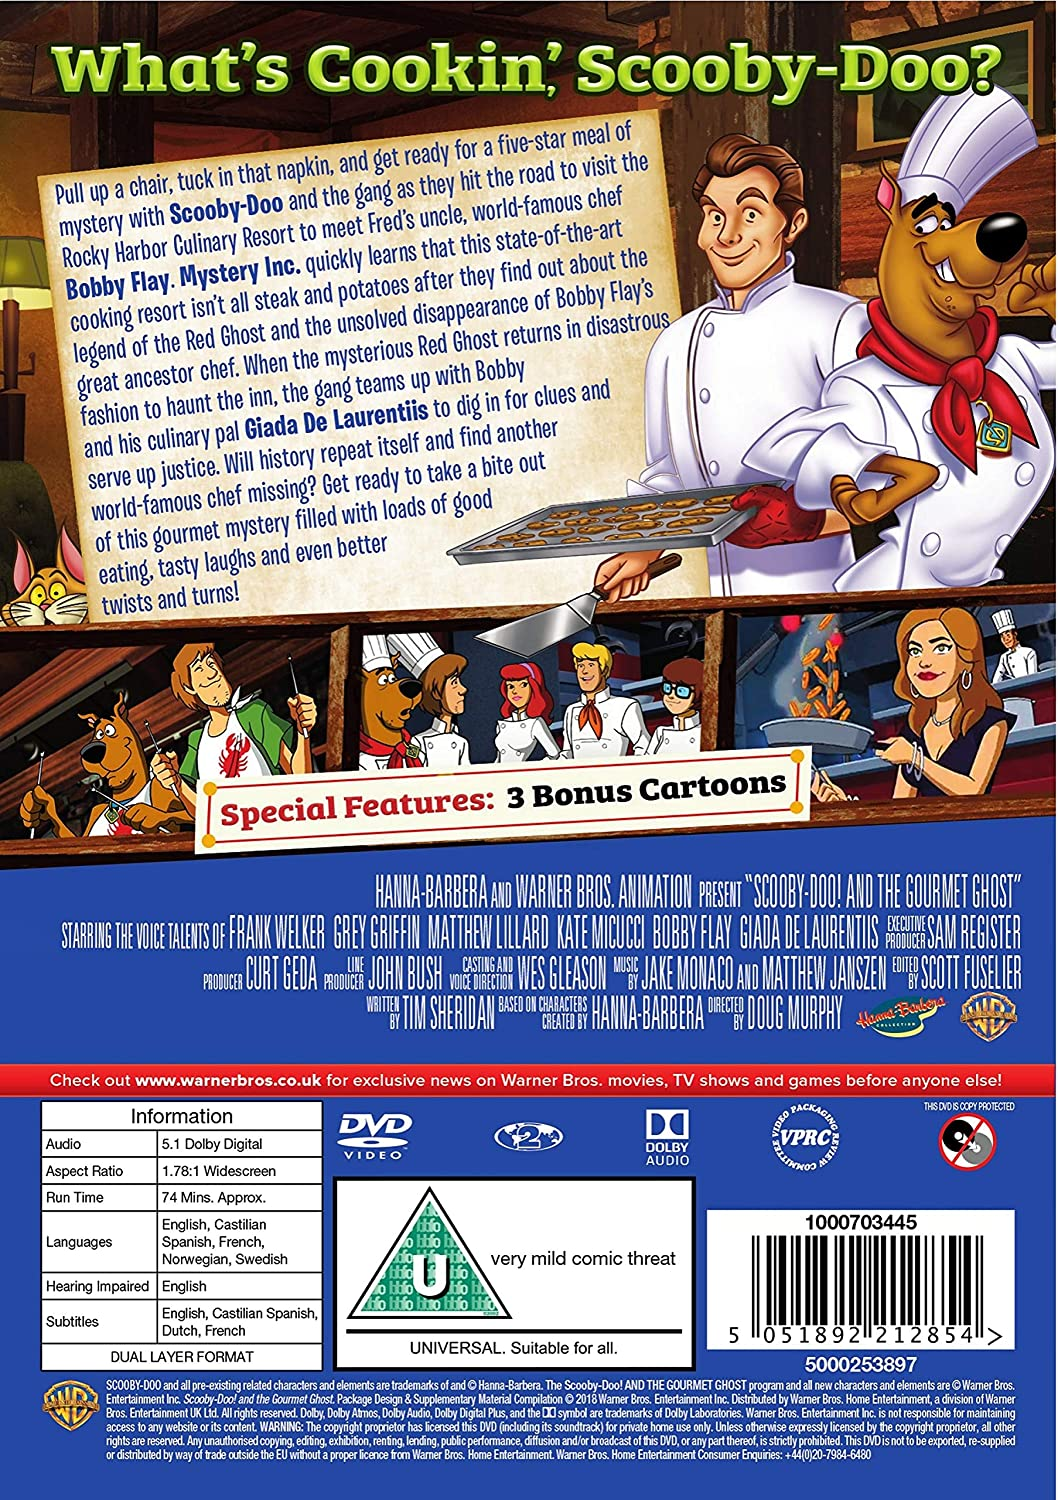 scooby doo and the gourmet ghost 2018 full movie online